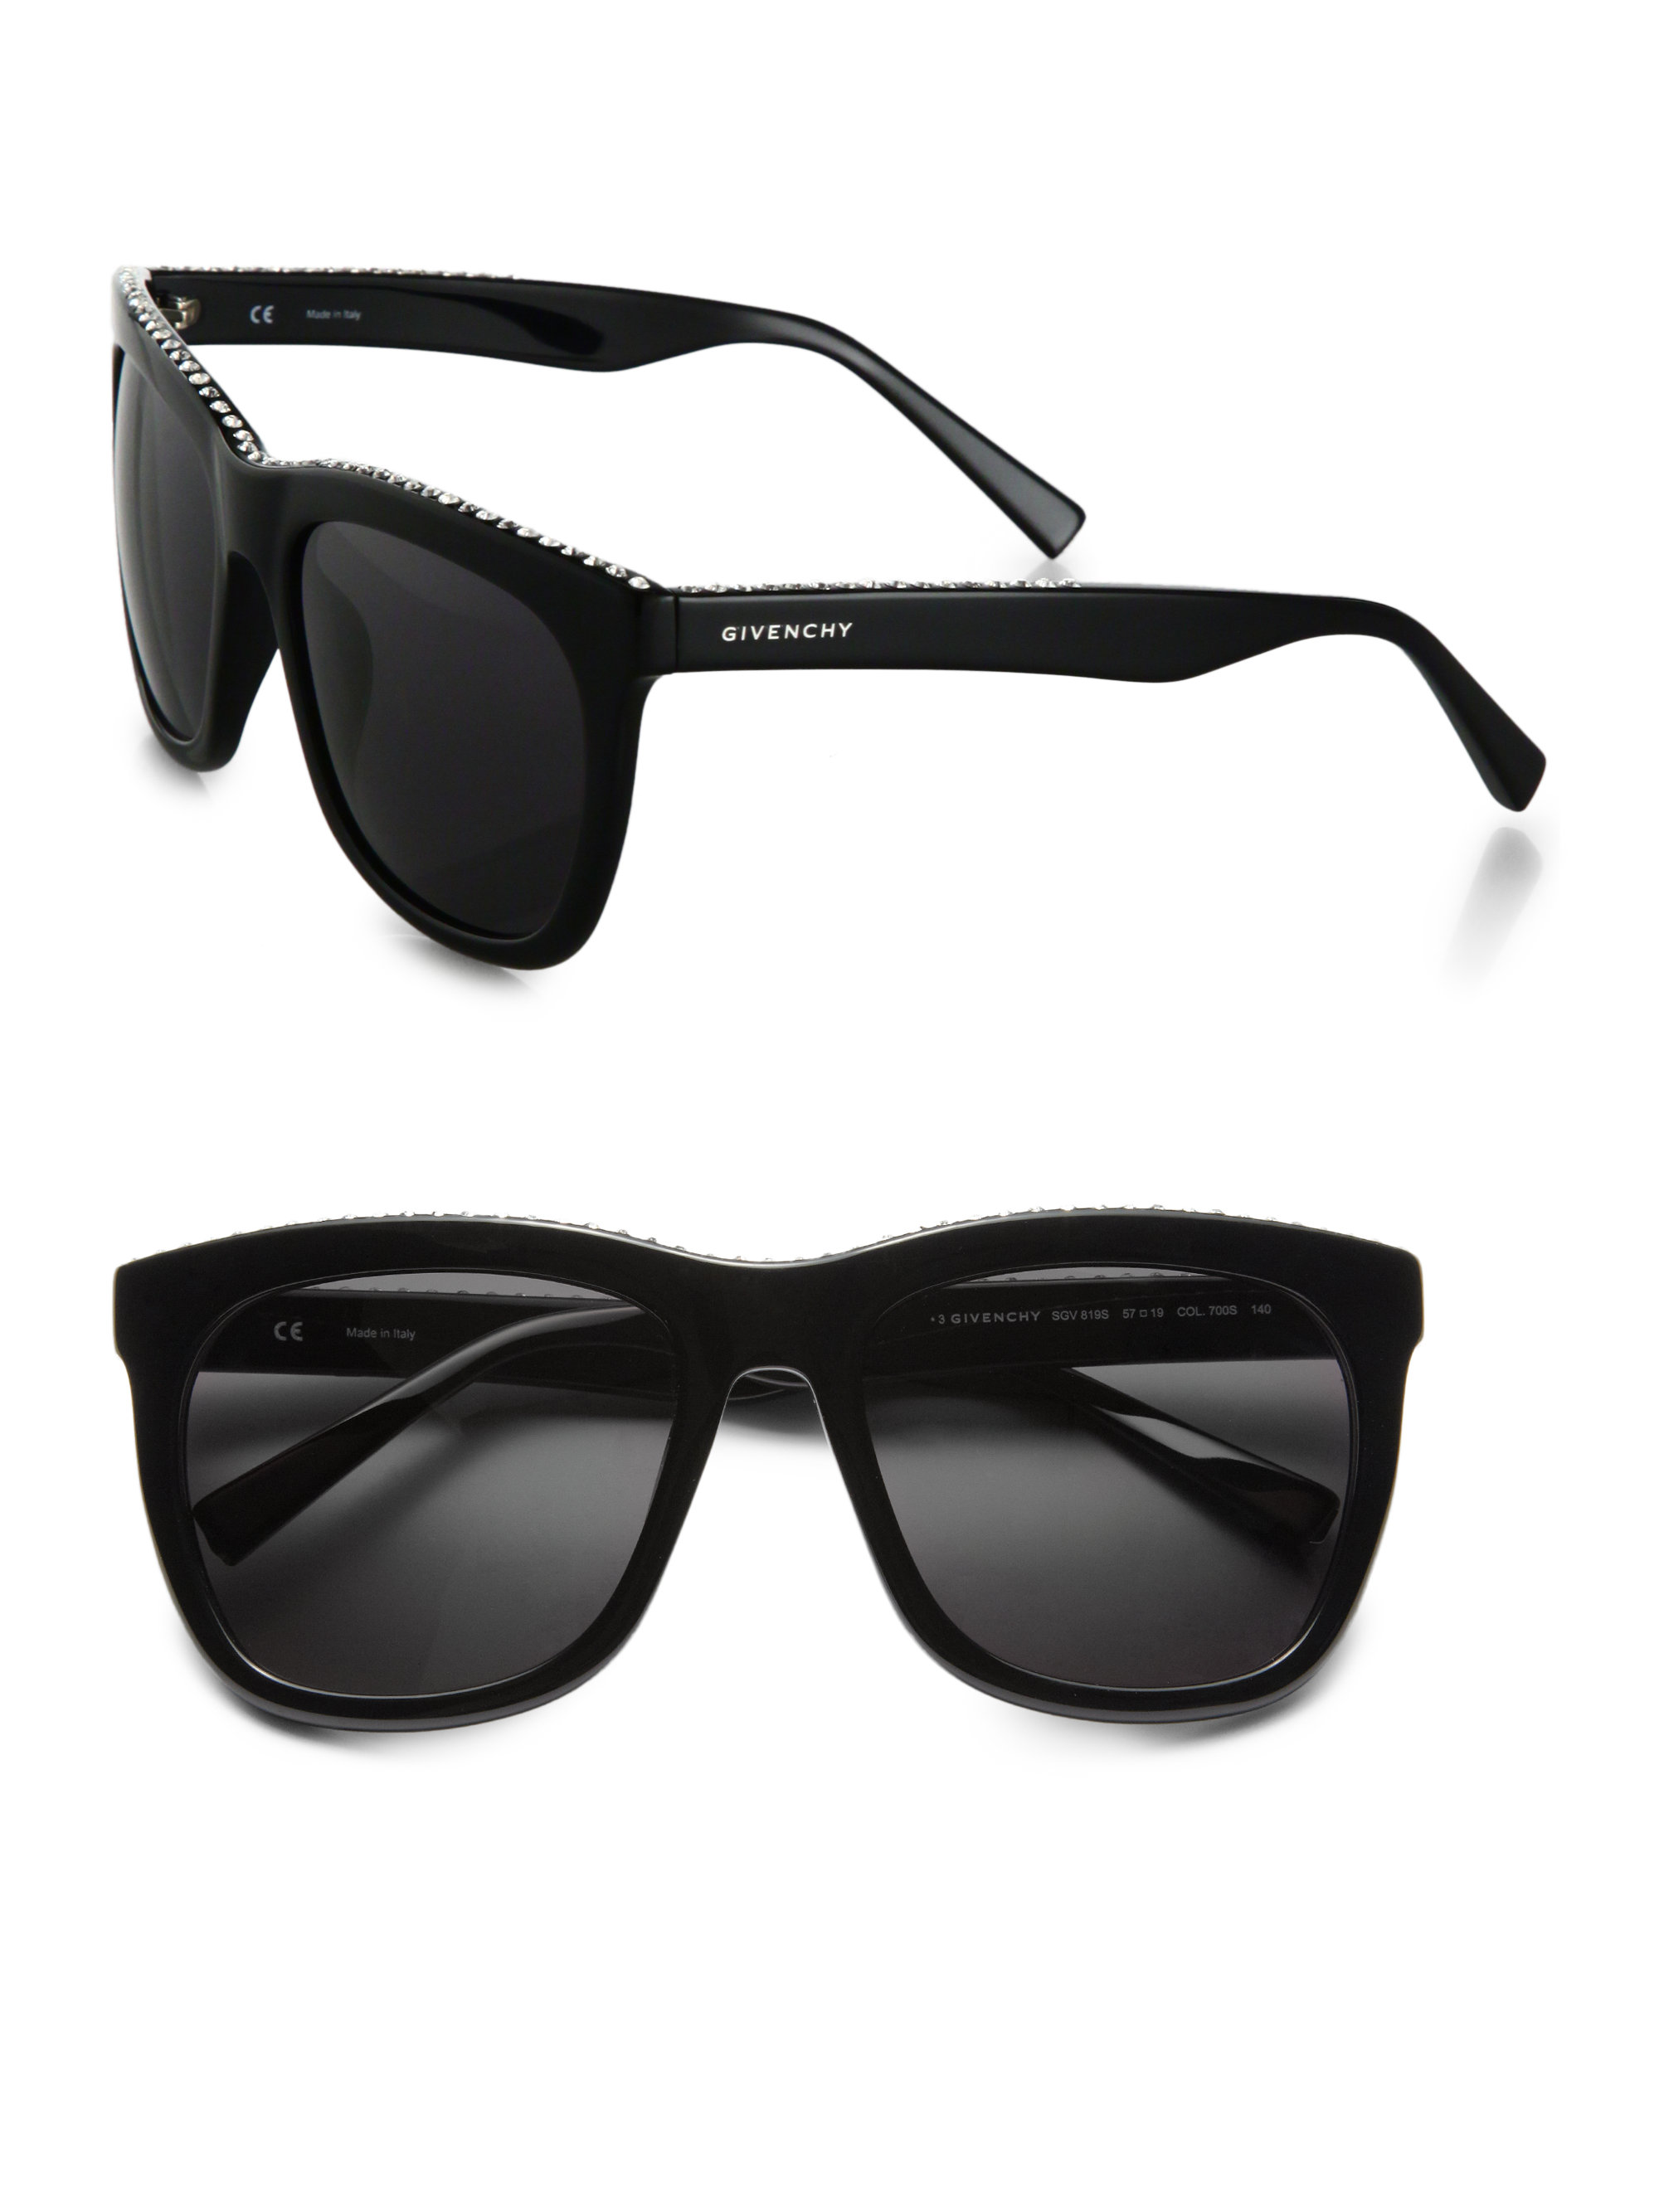 Givenchy Sunglasses Womens  givenchy swarovski crystal studded square sunglasses in black lyst